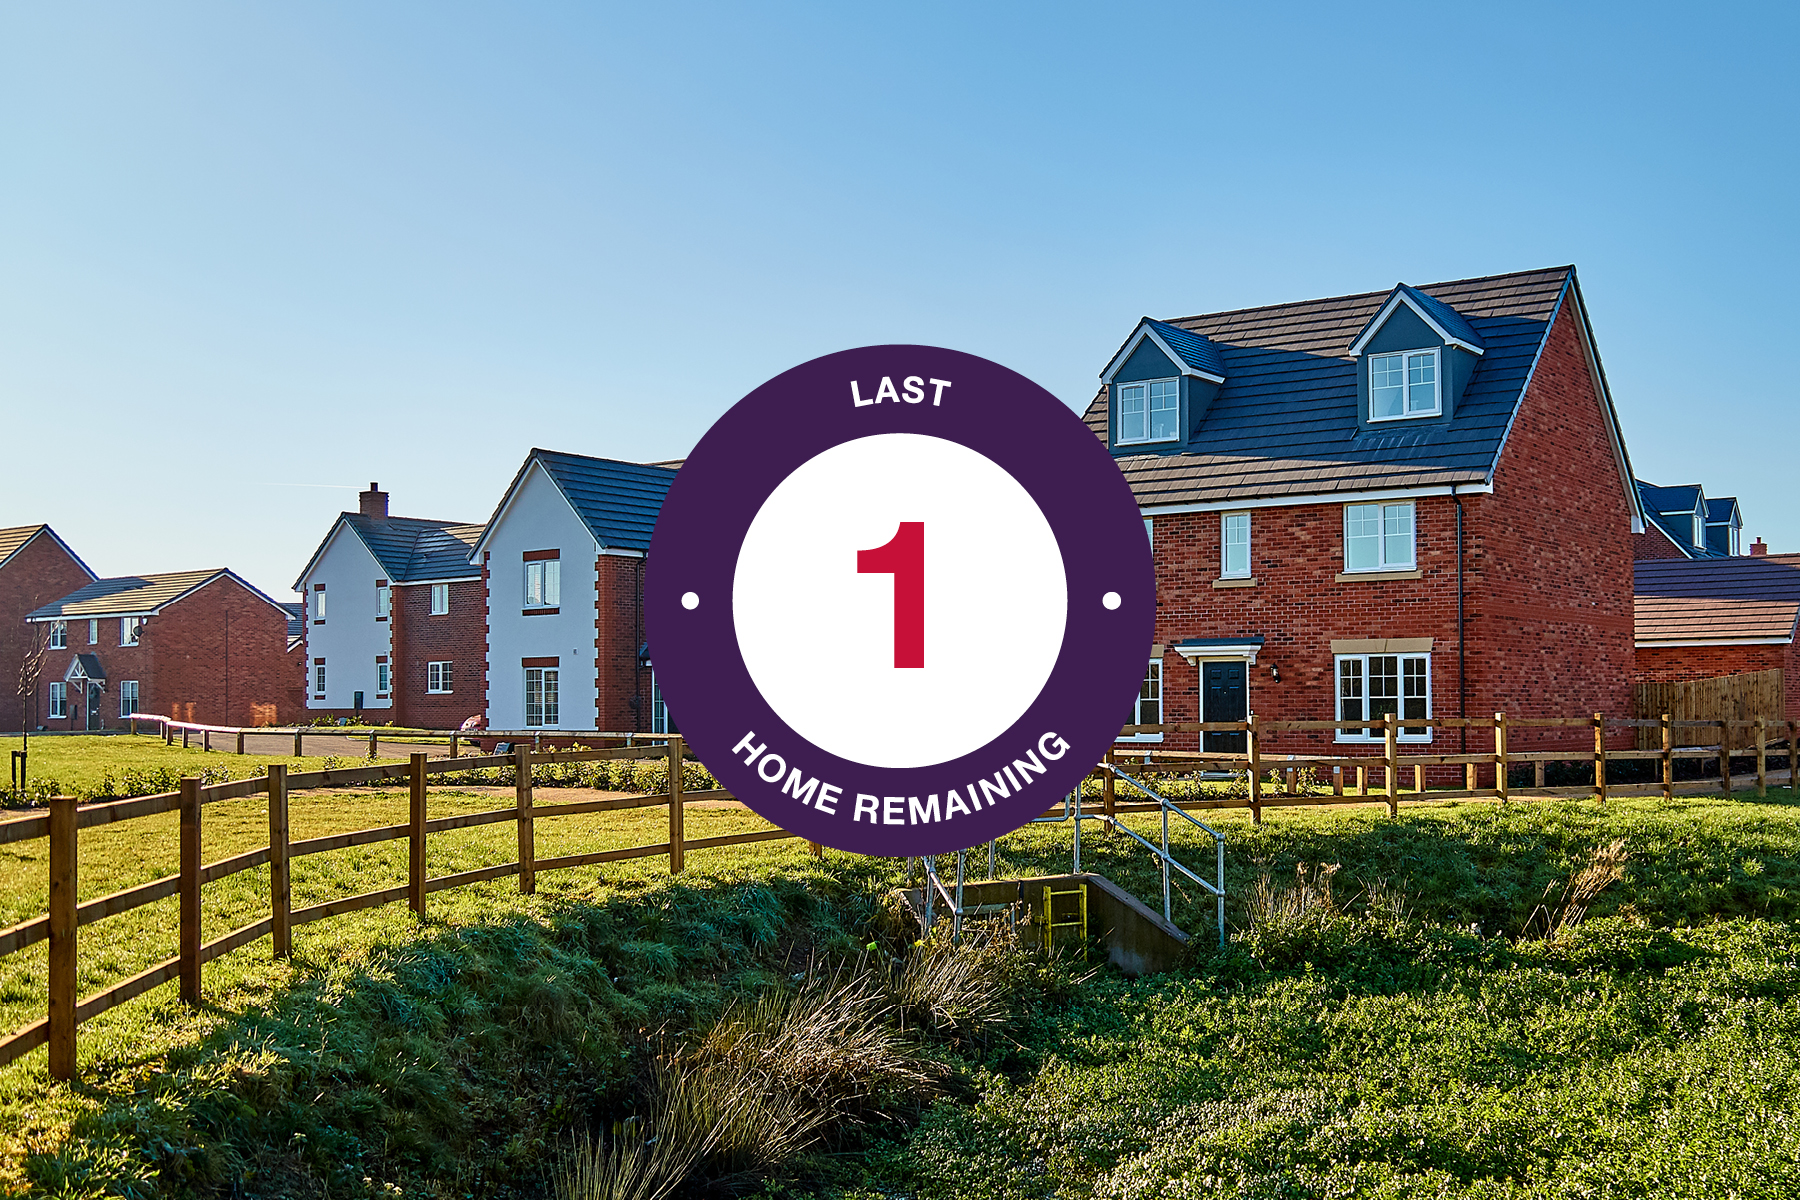 59195_TWM - Wheatfield Manor - Web graphics1